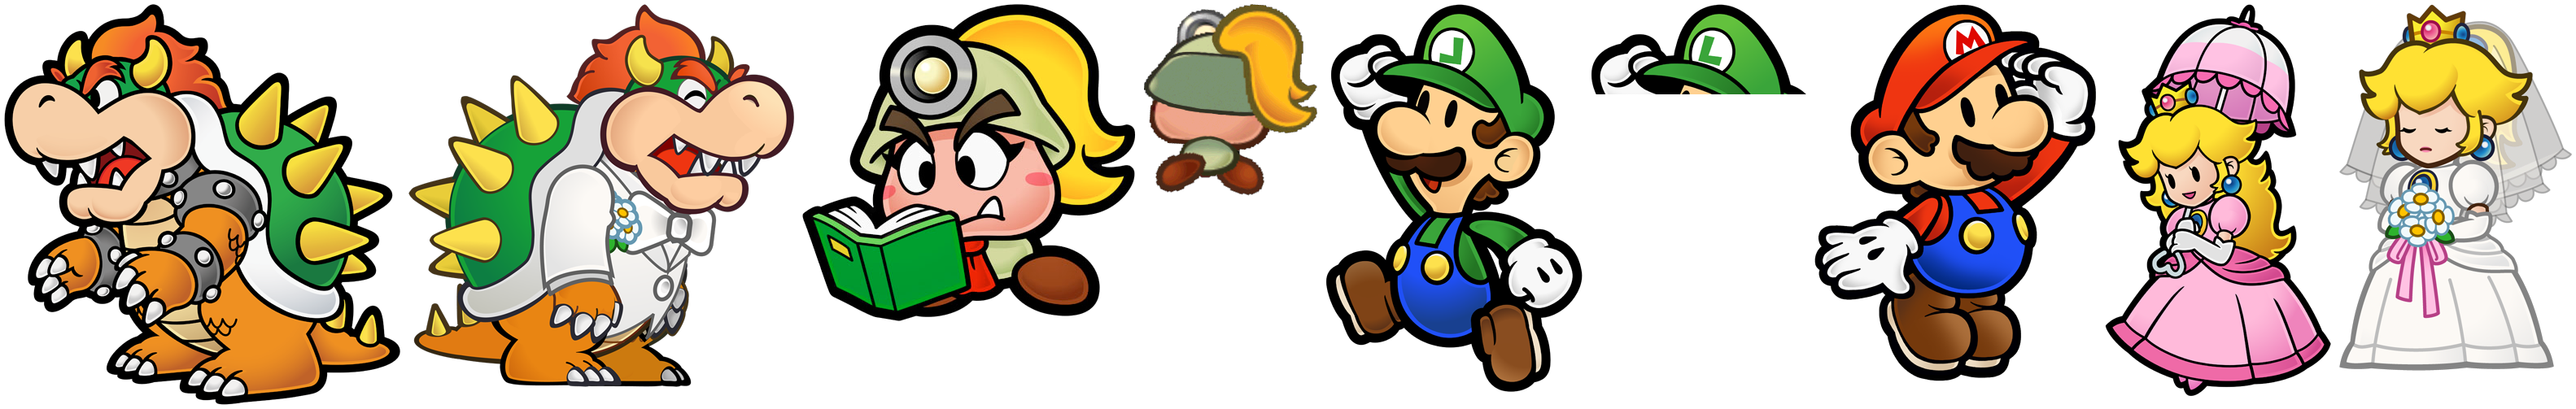 The Spriters Resource Full Sheet View Super Smash Bros Brawl Paper Mario Trophies